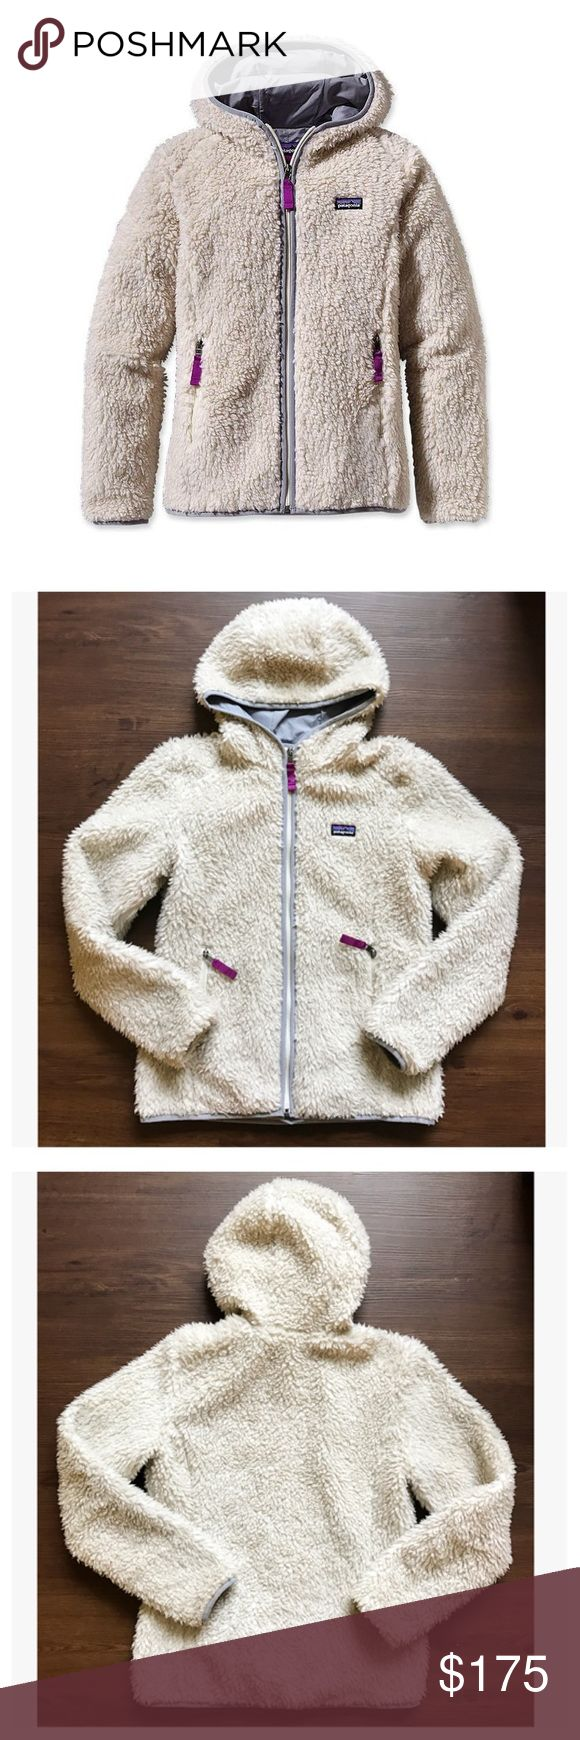 Patagonia Retro X Hoodie Really hard to find style and color. Only selling because I need a smaller size. Patagonia Jackets & Coats